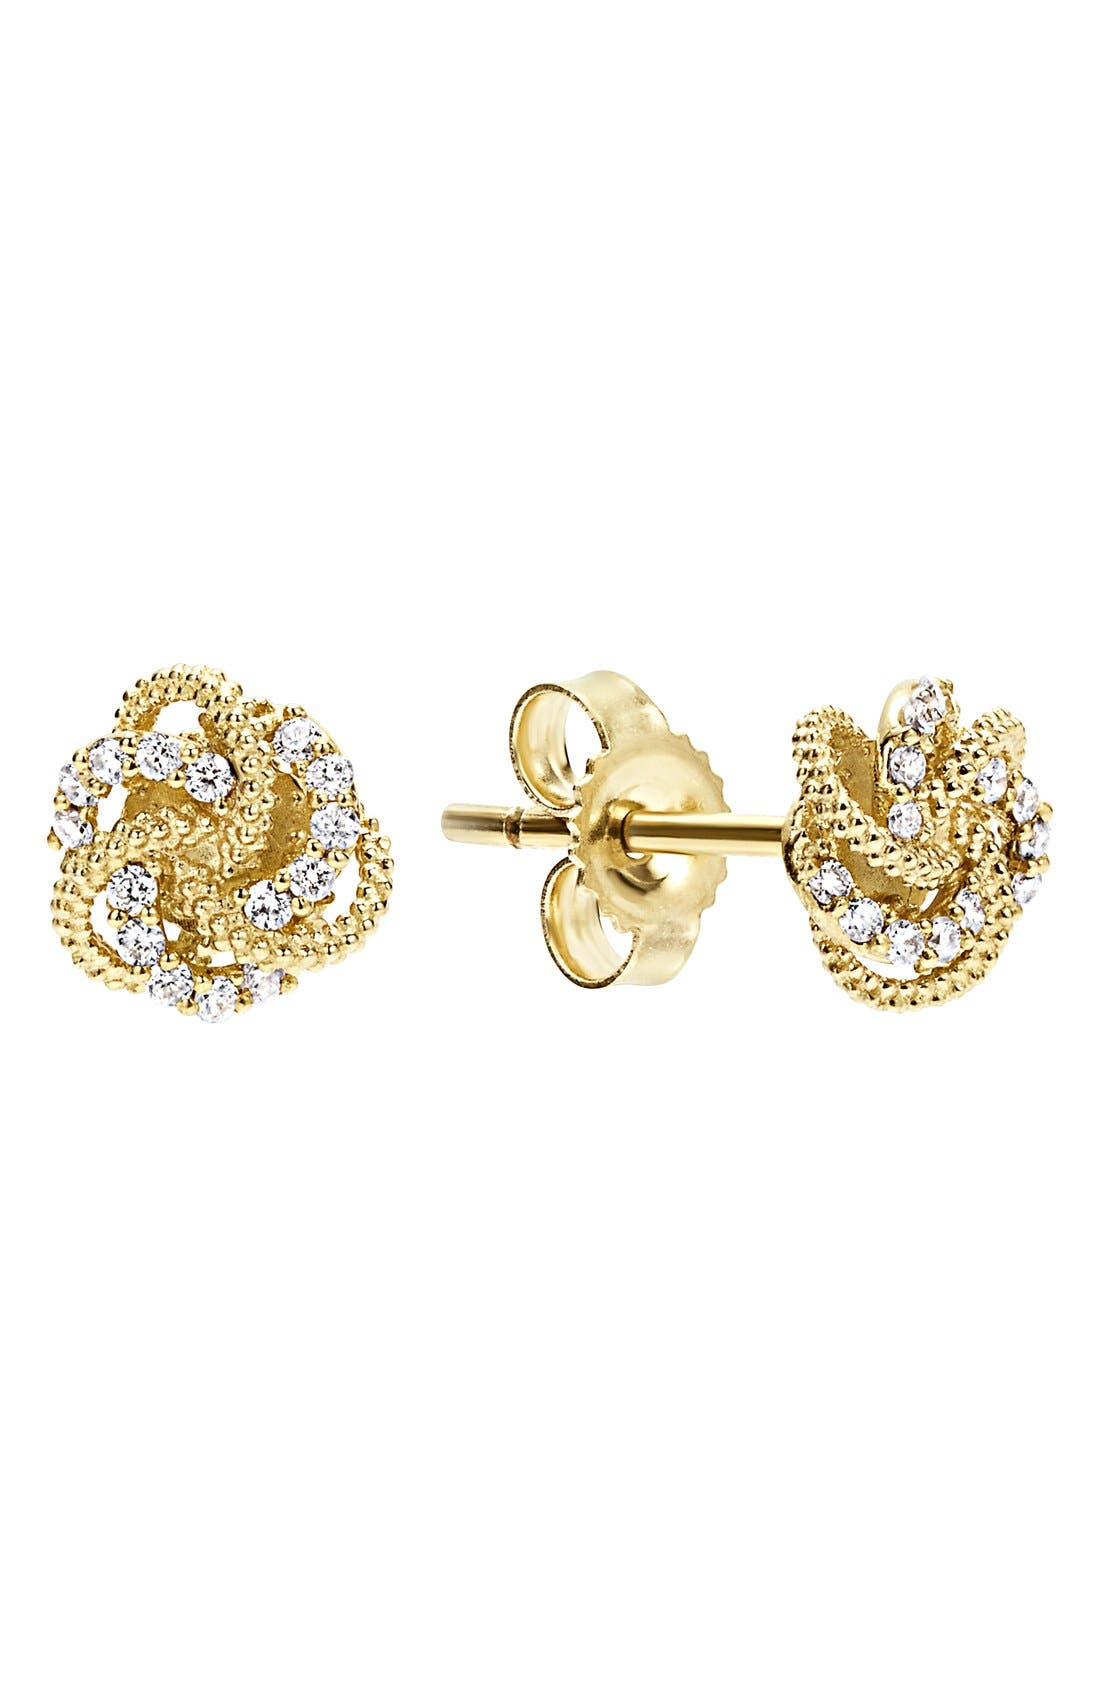 'Love Knot' Stud Earrings,                         Main,                         color, Gold